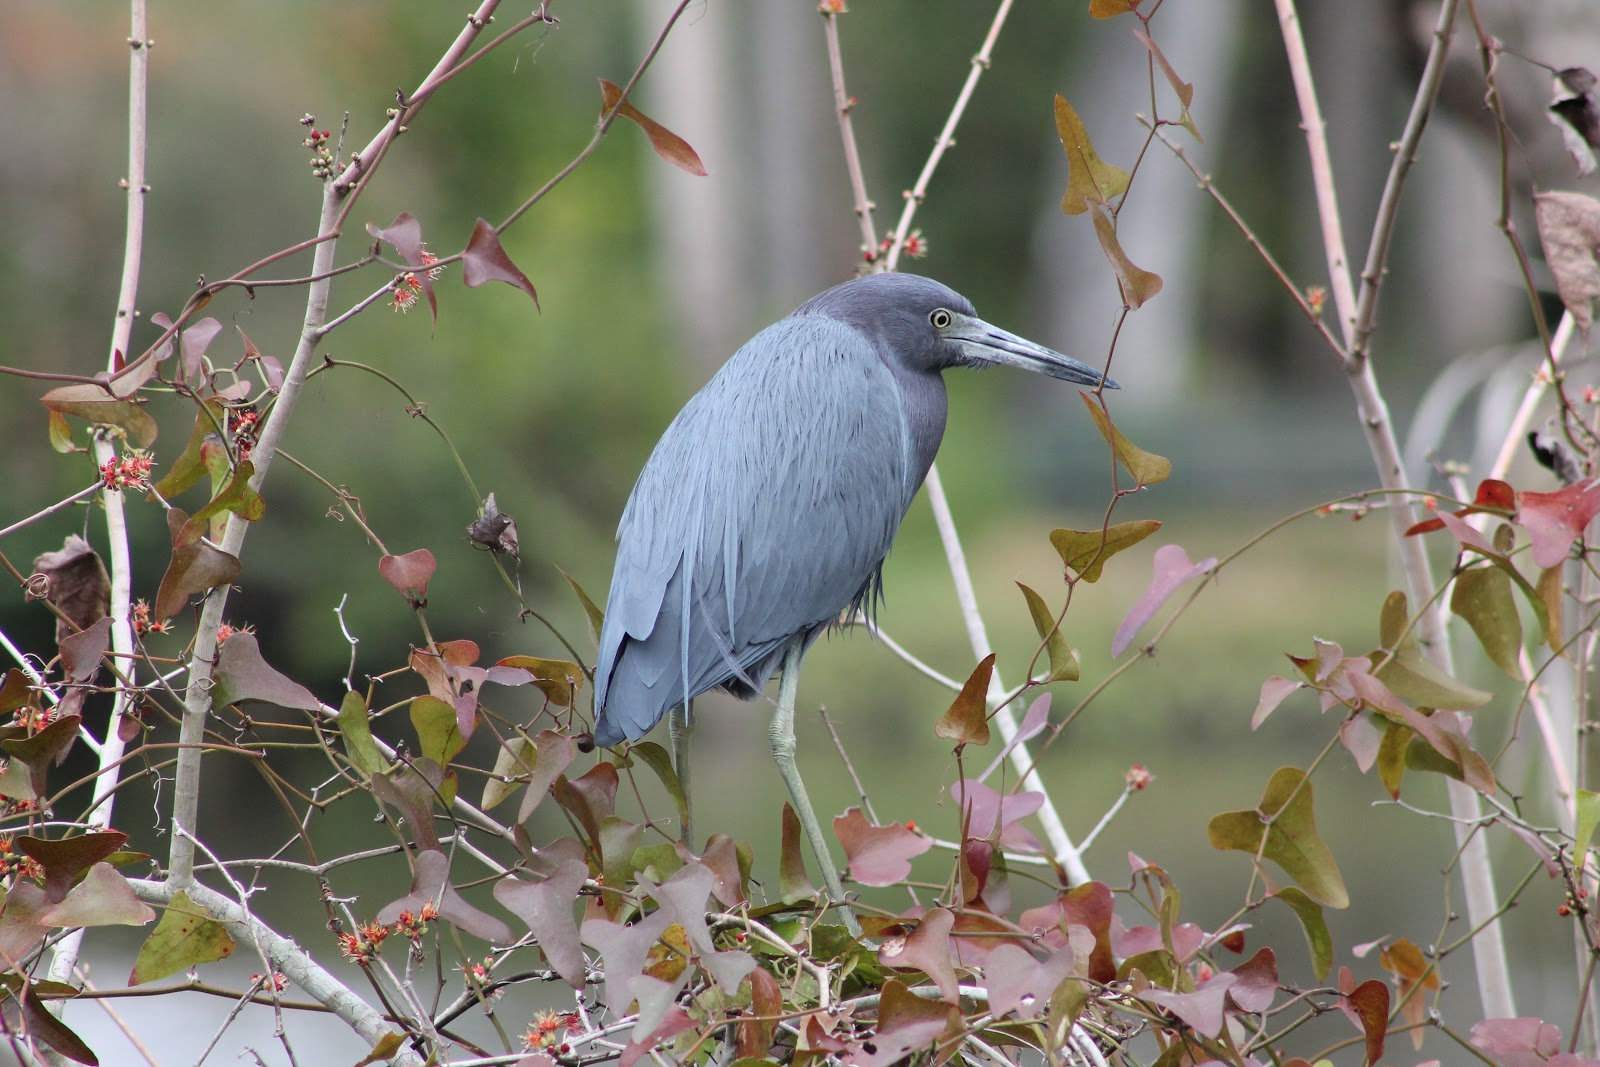 ty and ida on the road the treasure coast port st lucie is part of the treasure coast and we re finding a treasure trove of good birds like this little blue heron and wildlife